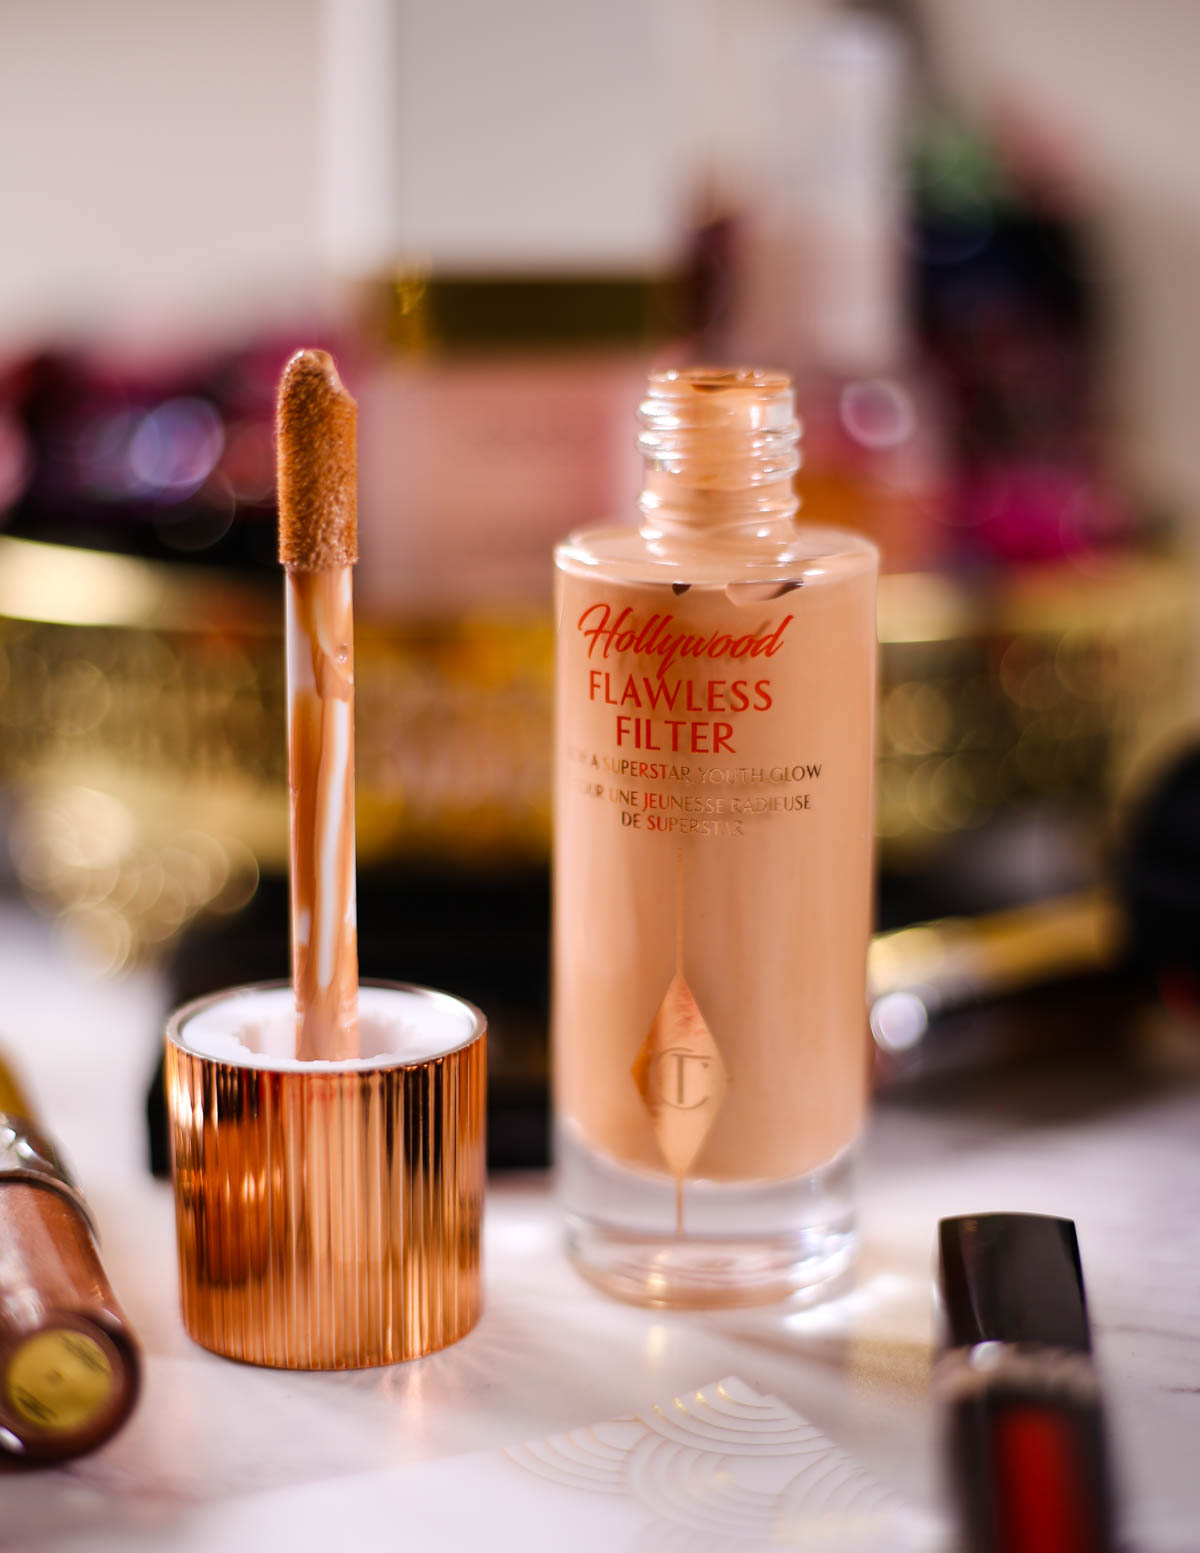 Get Red Carpet Ready With These Beauty Essentials | Feat Charlotte Tilbury Hollywood Flawless filter Complexion Booster with doe foot applicator